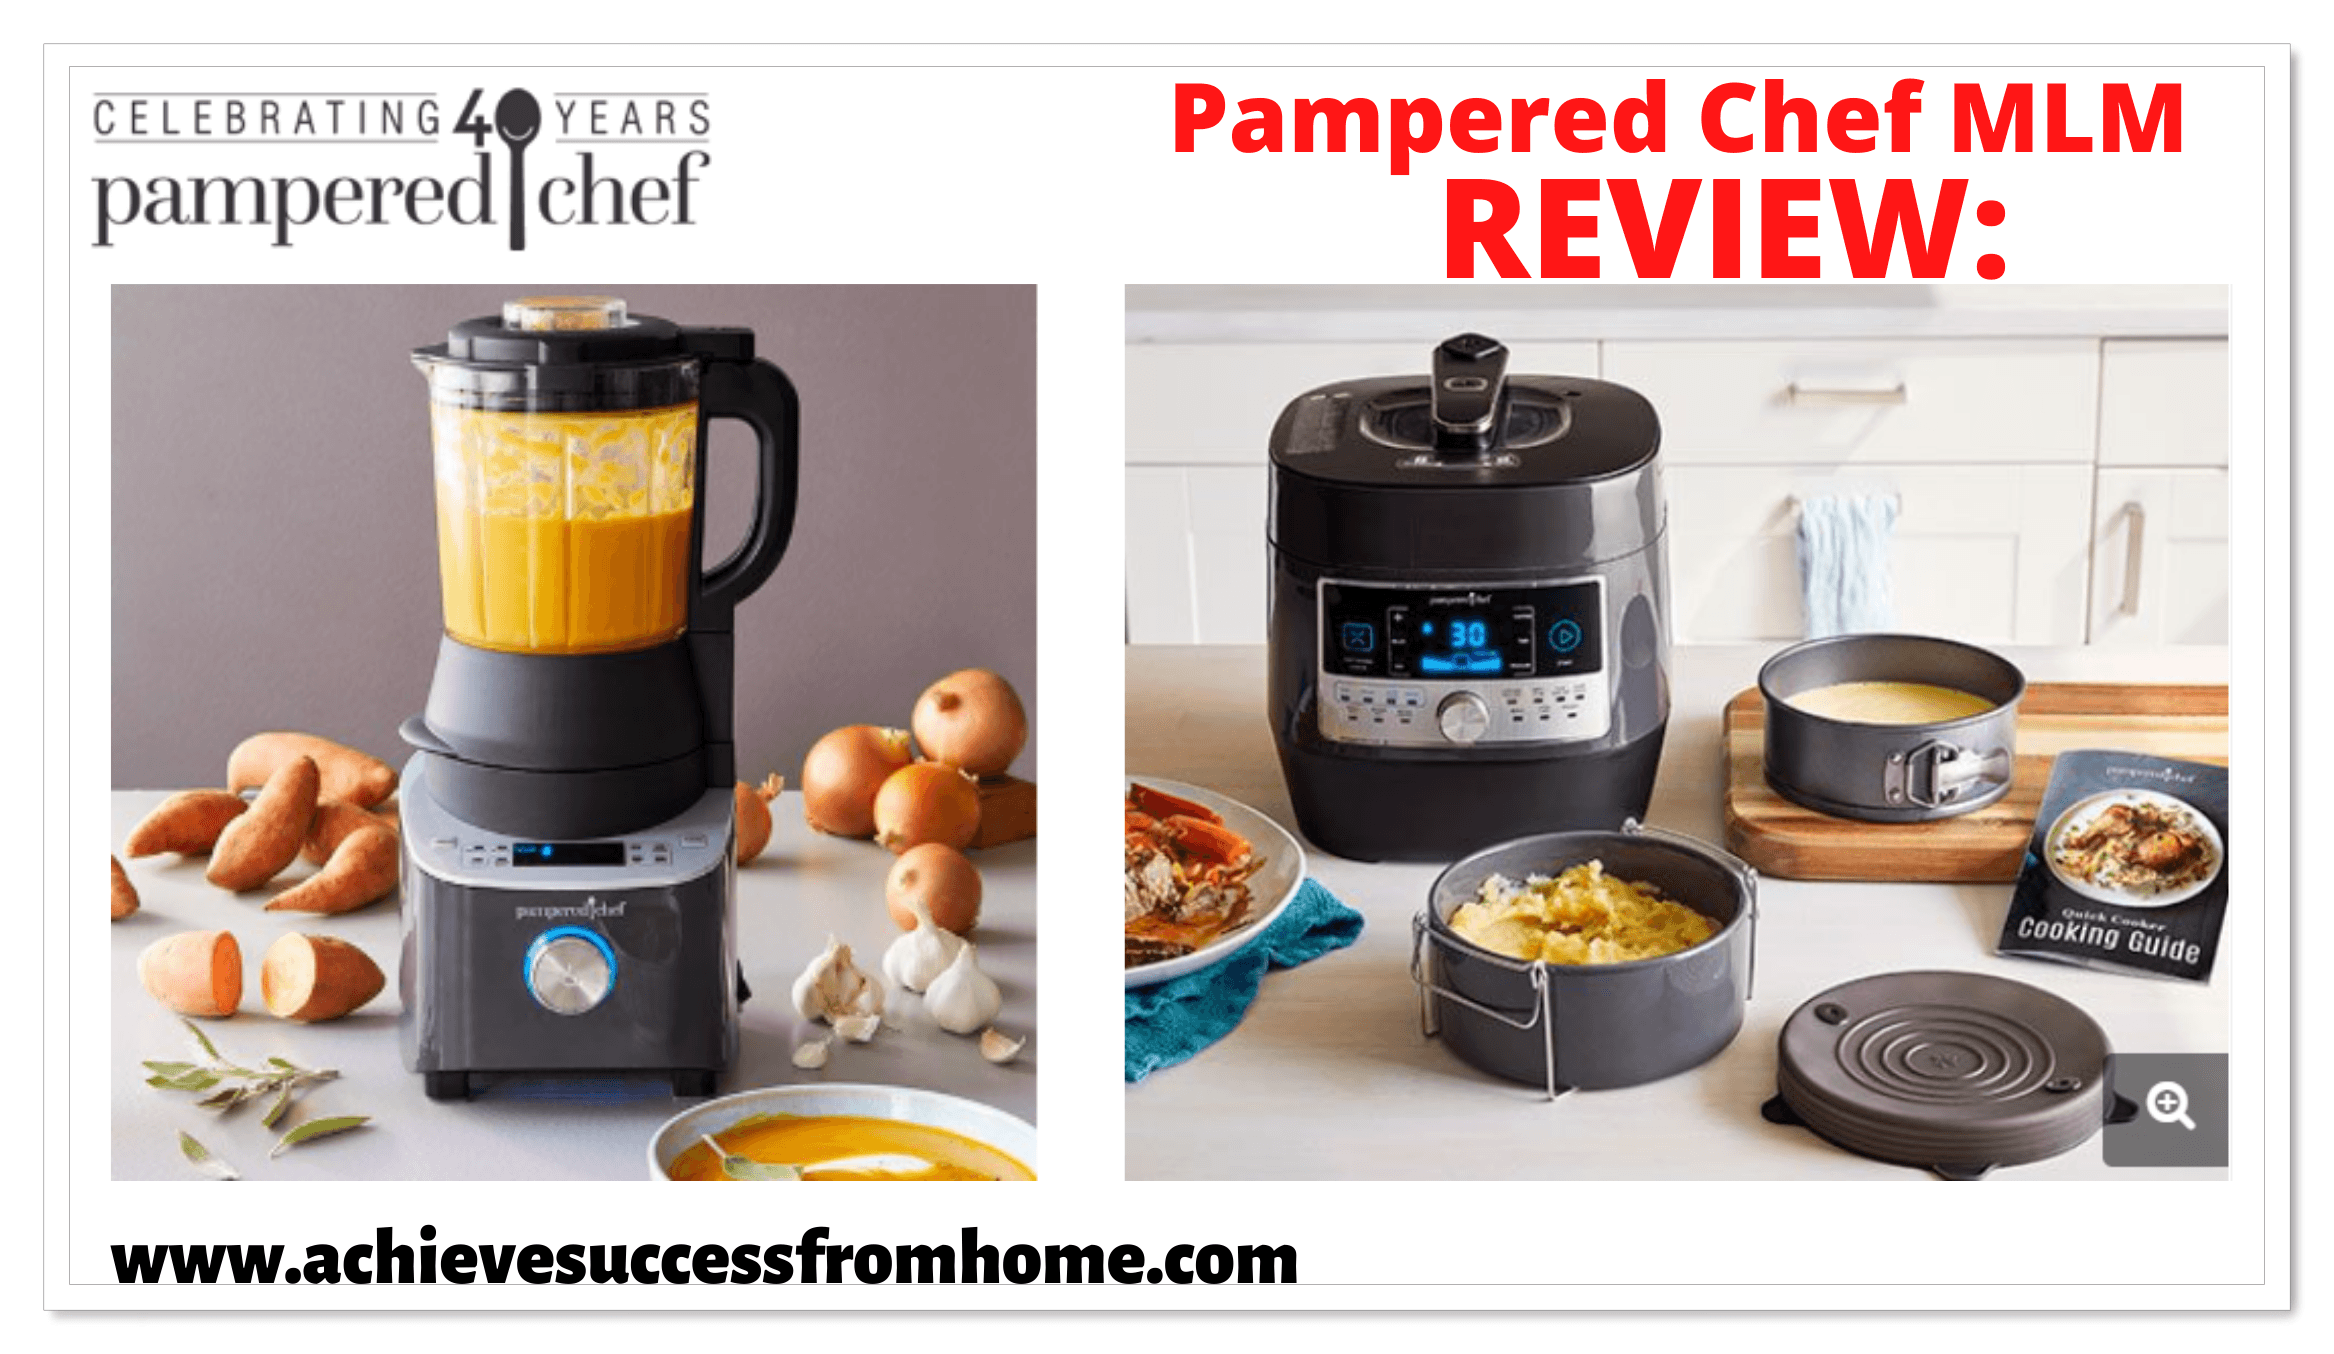 The Pampered Chef MLM Review - Does Warren Buffett actually make a difference?